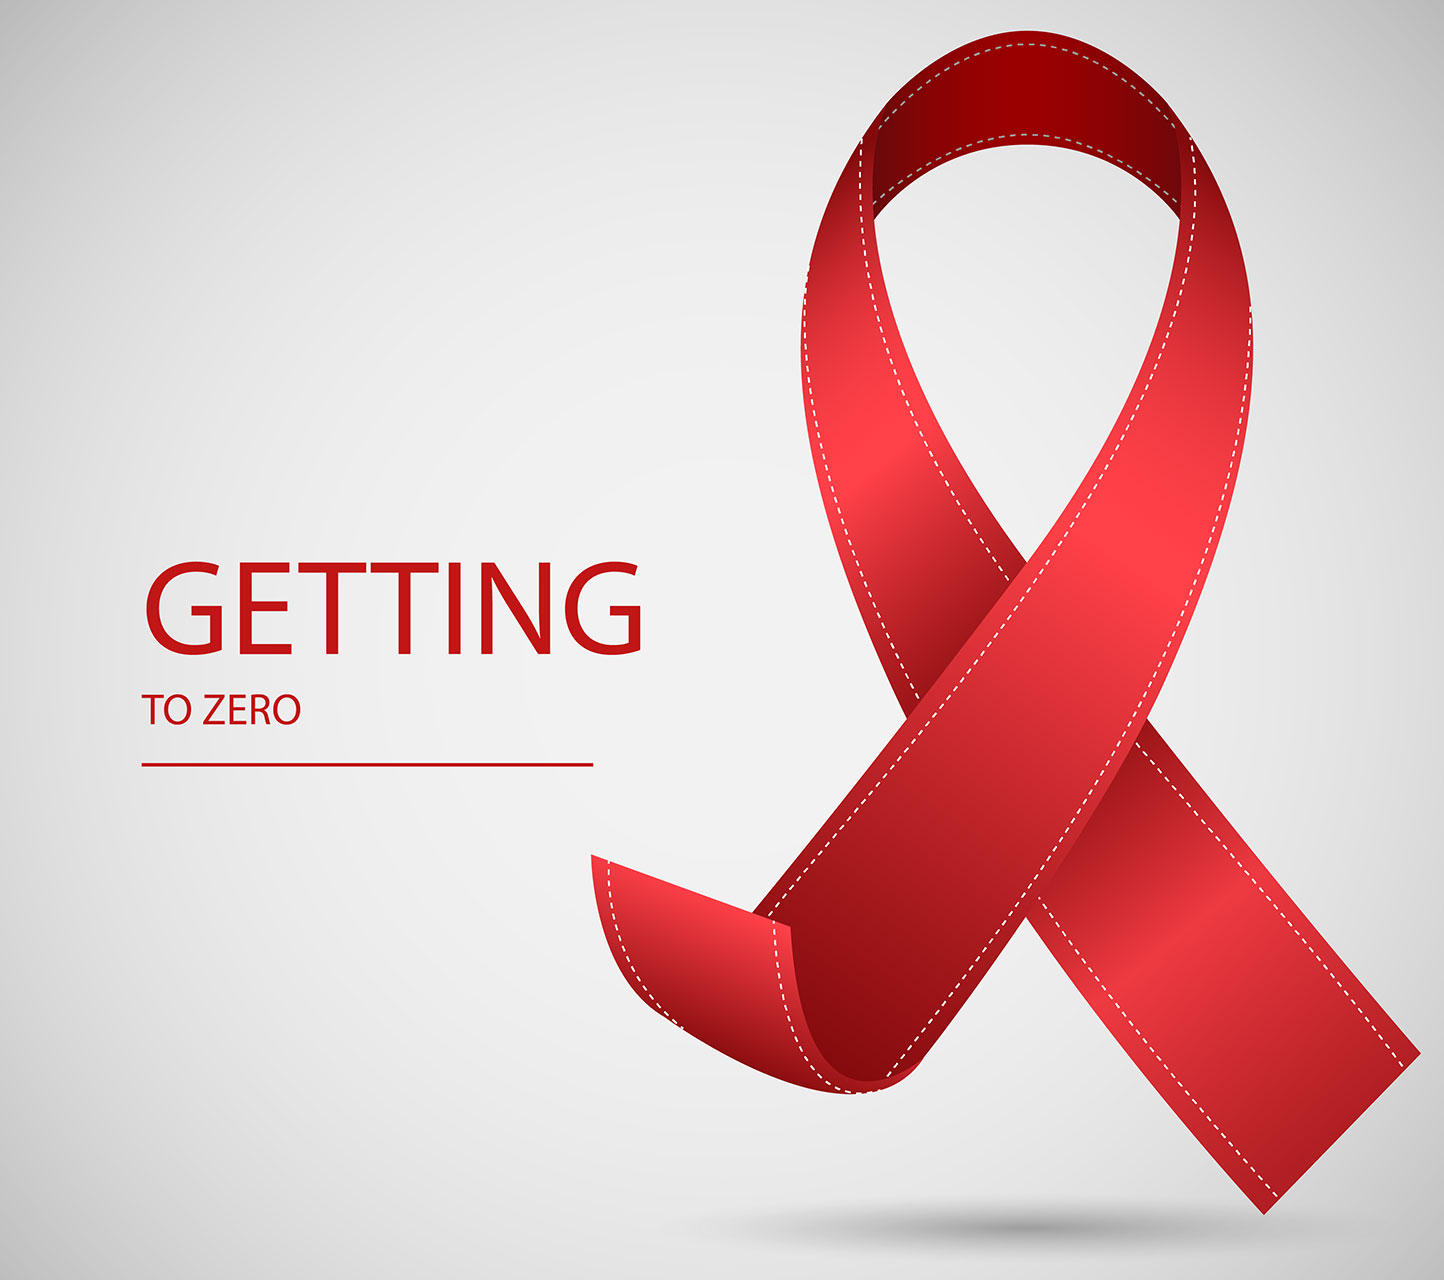 GETTING-TO-ZERO-HIV-AND-AIDS